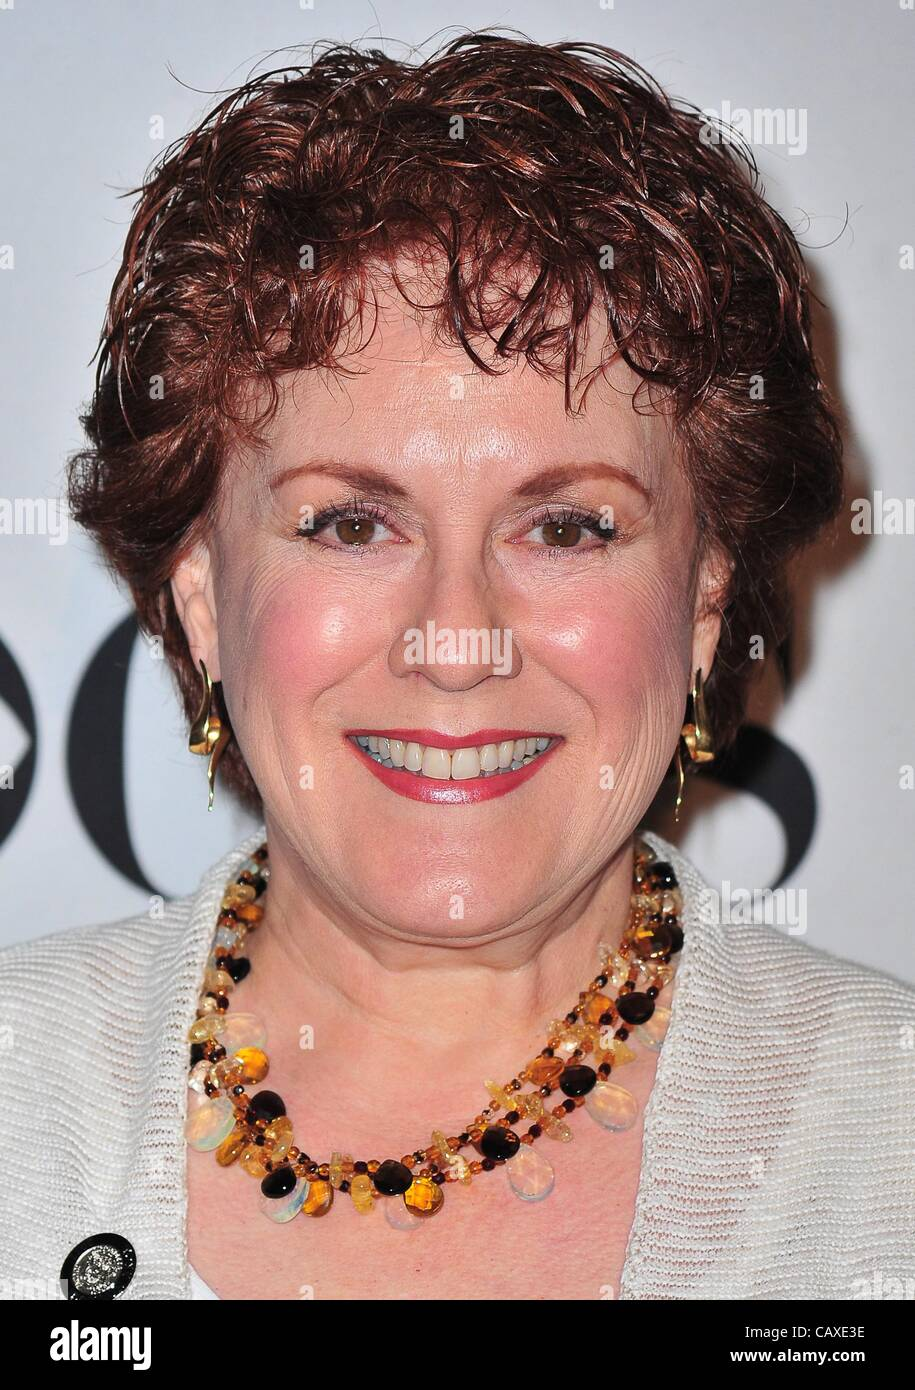 Judy Kaye nude (15 photo), Topless, Paparazzi, Twitter, panties 2006